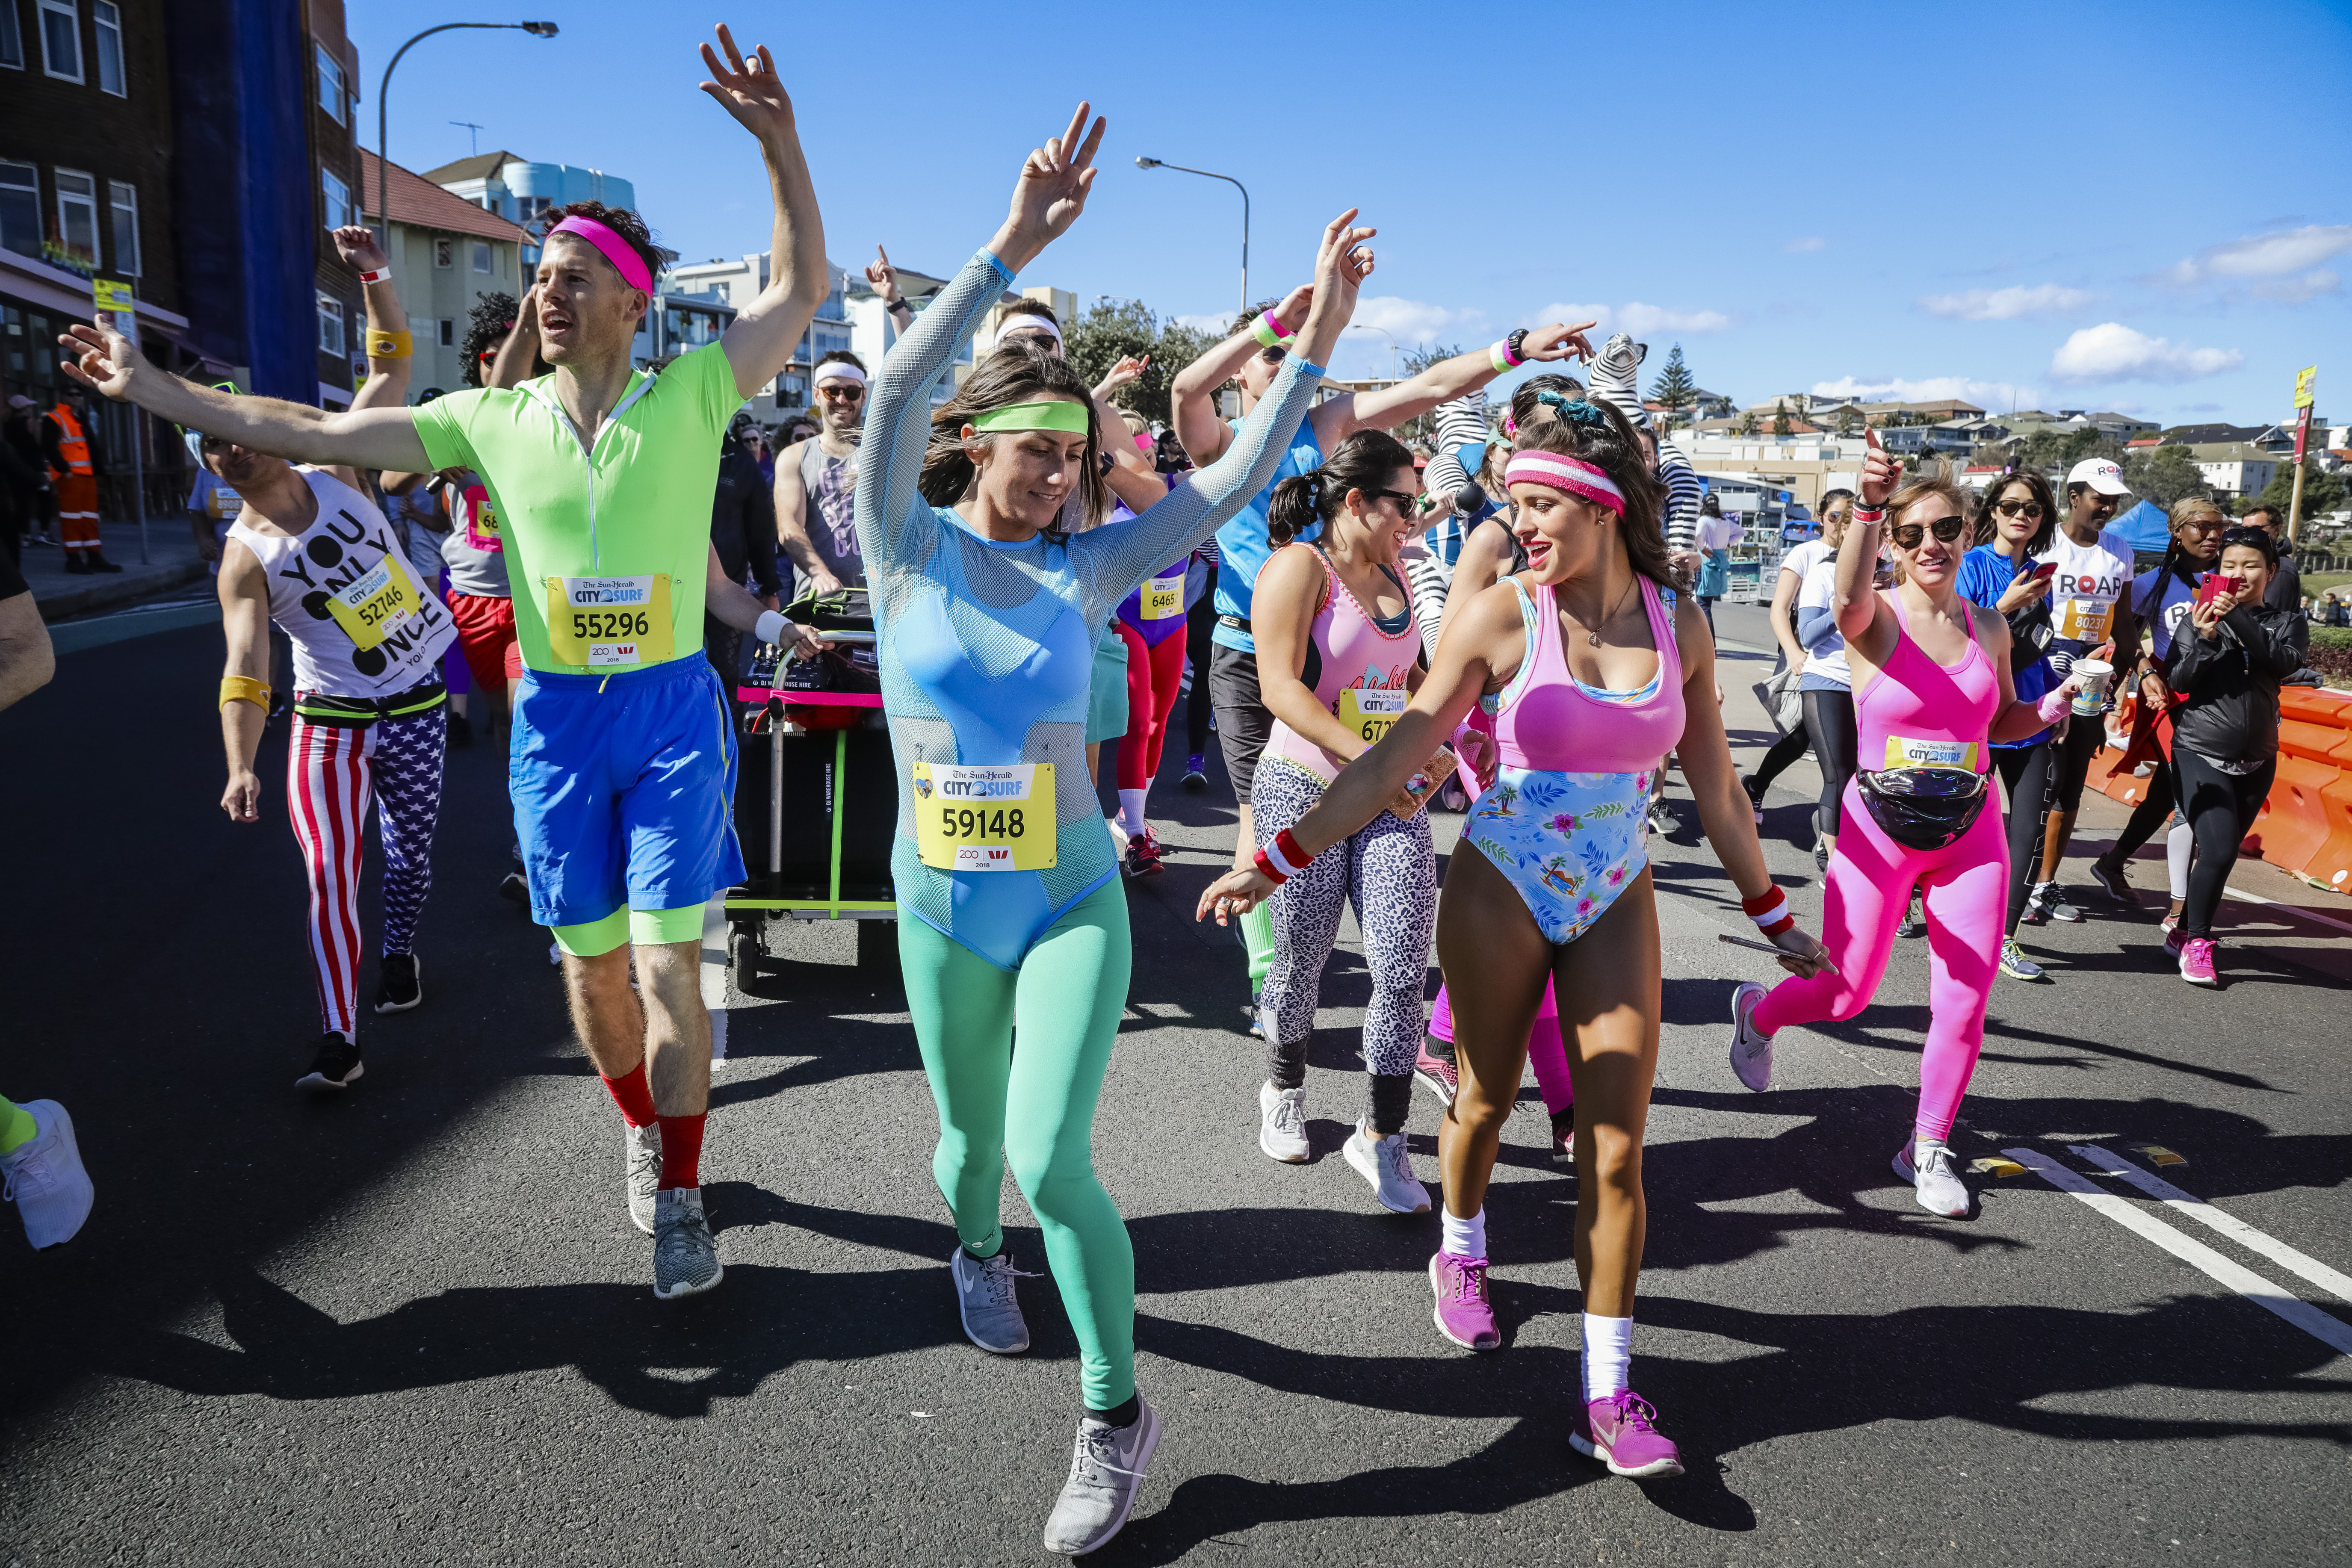 The Sun-Herald City2Surf presented by Westpac